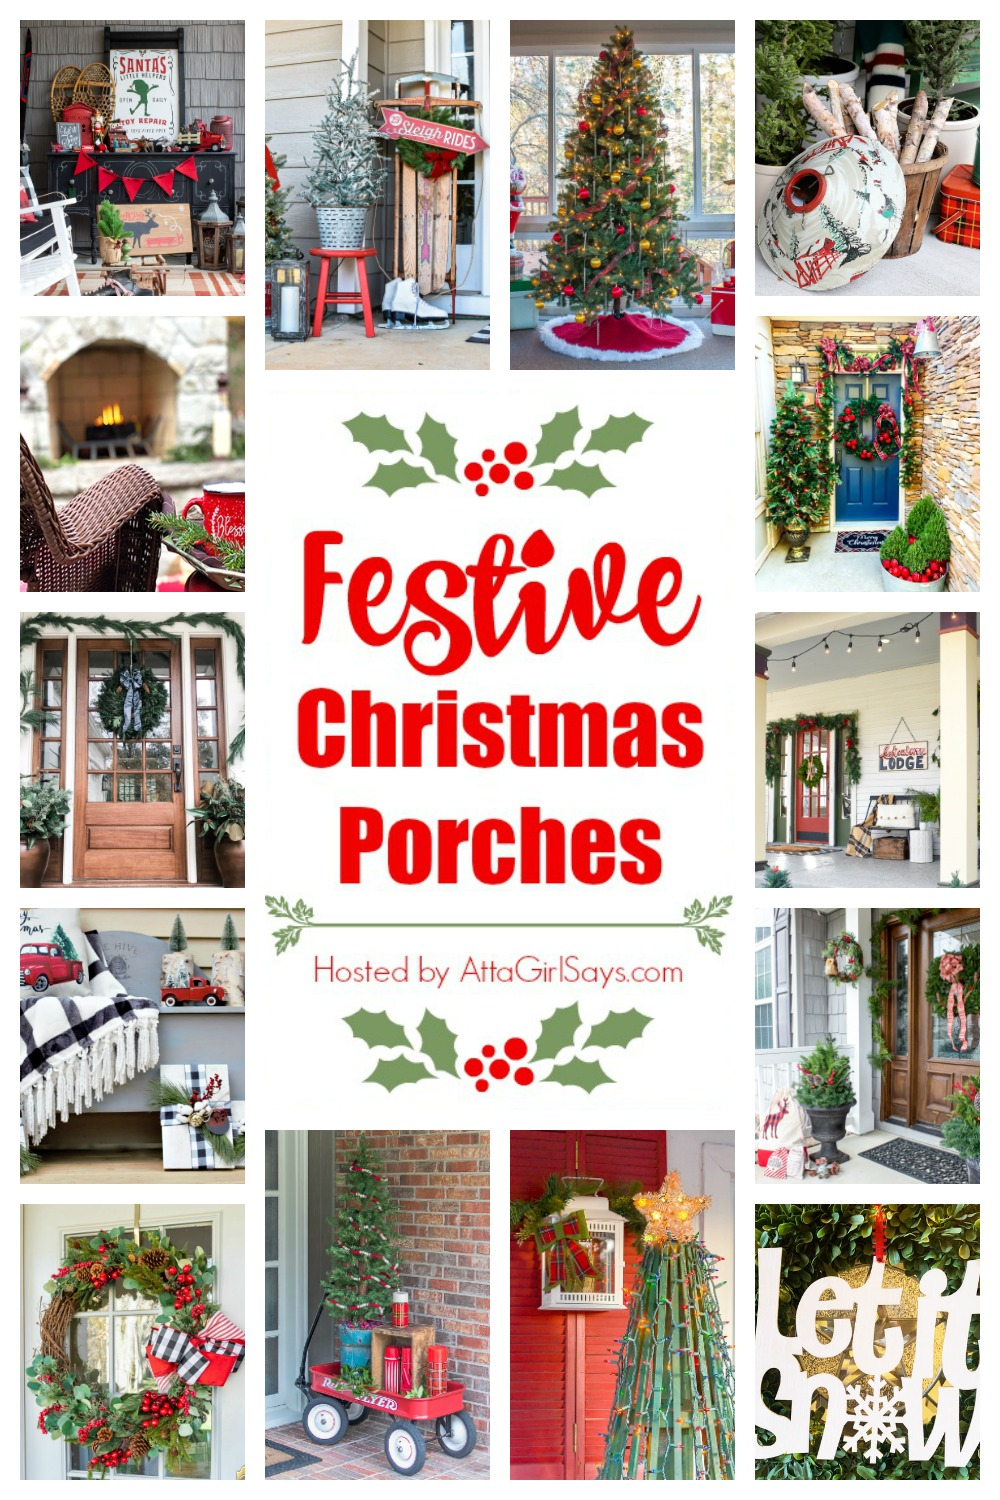 collage photo showing Christmas porches with the title Festive Christmas porches